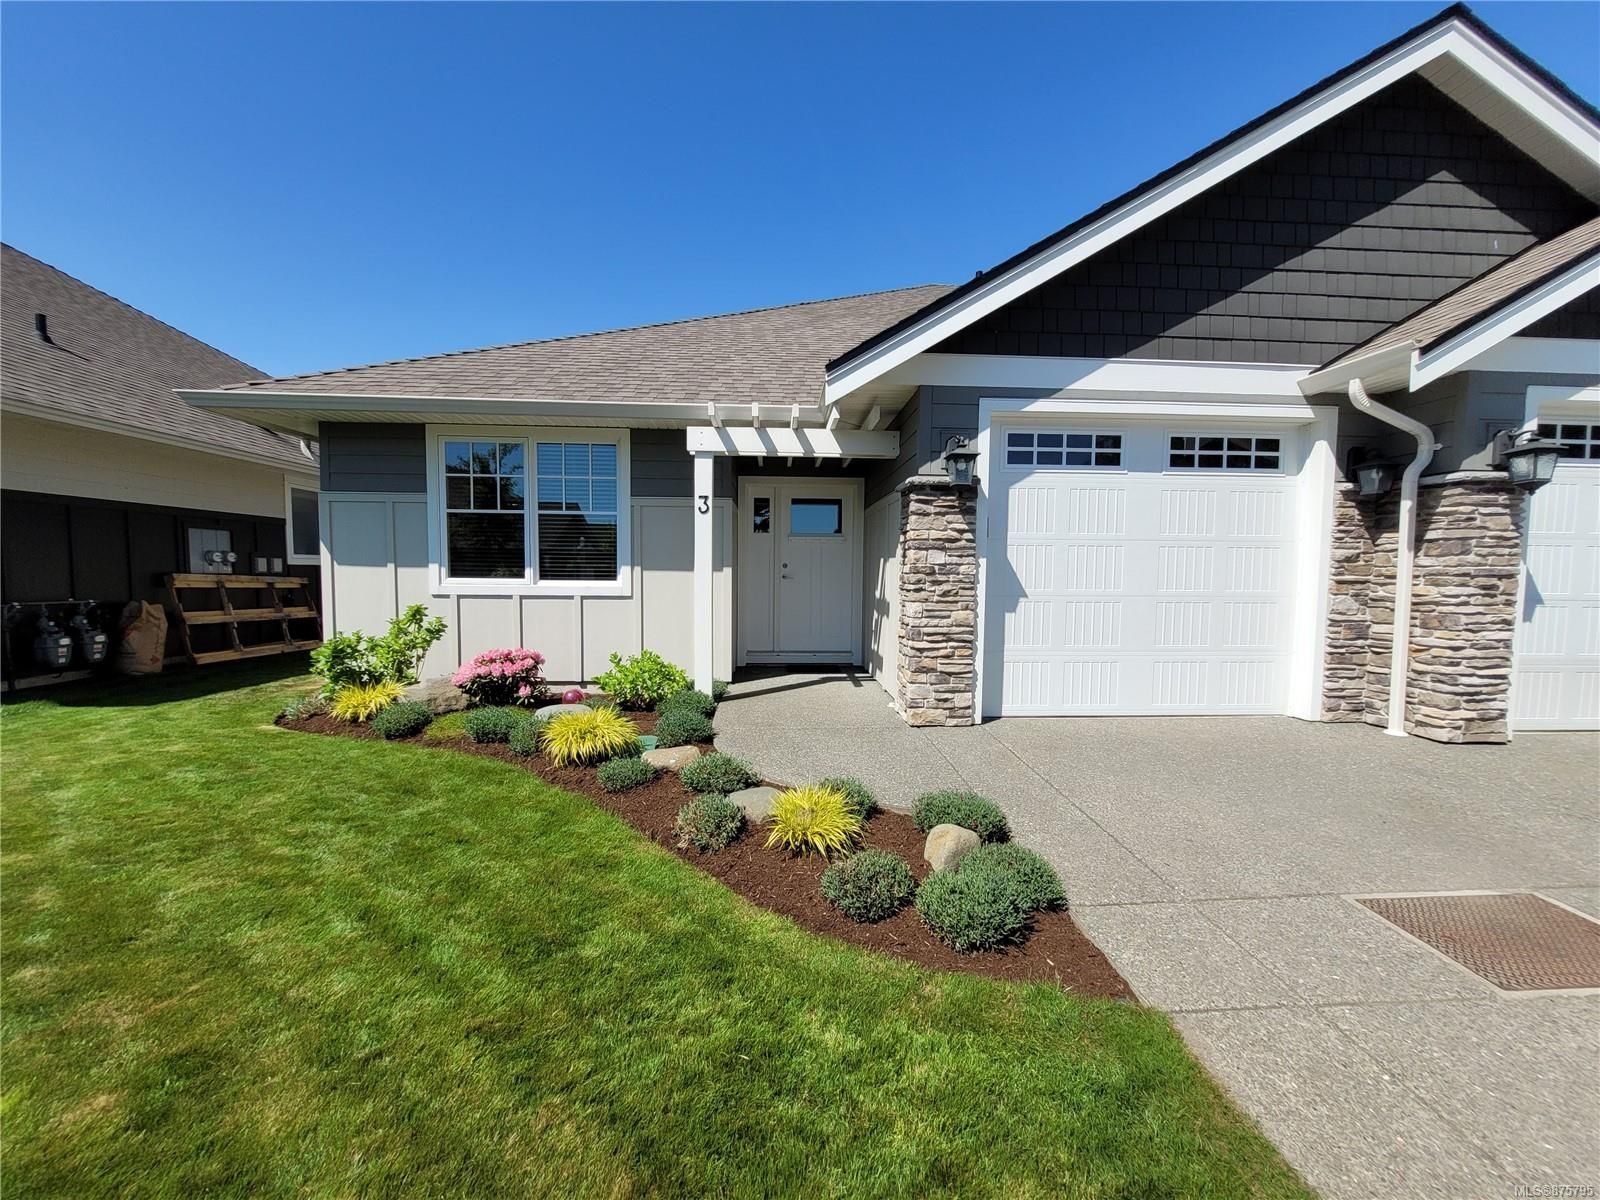 Main Photo: 3 2991 North Beach Dr in : CR Campbell River North Row/Townhouse for sale (Campbell River)  : MLS®# 875795